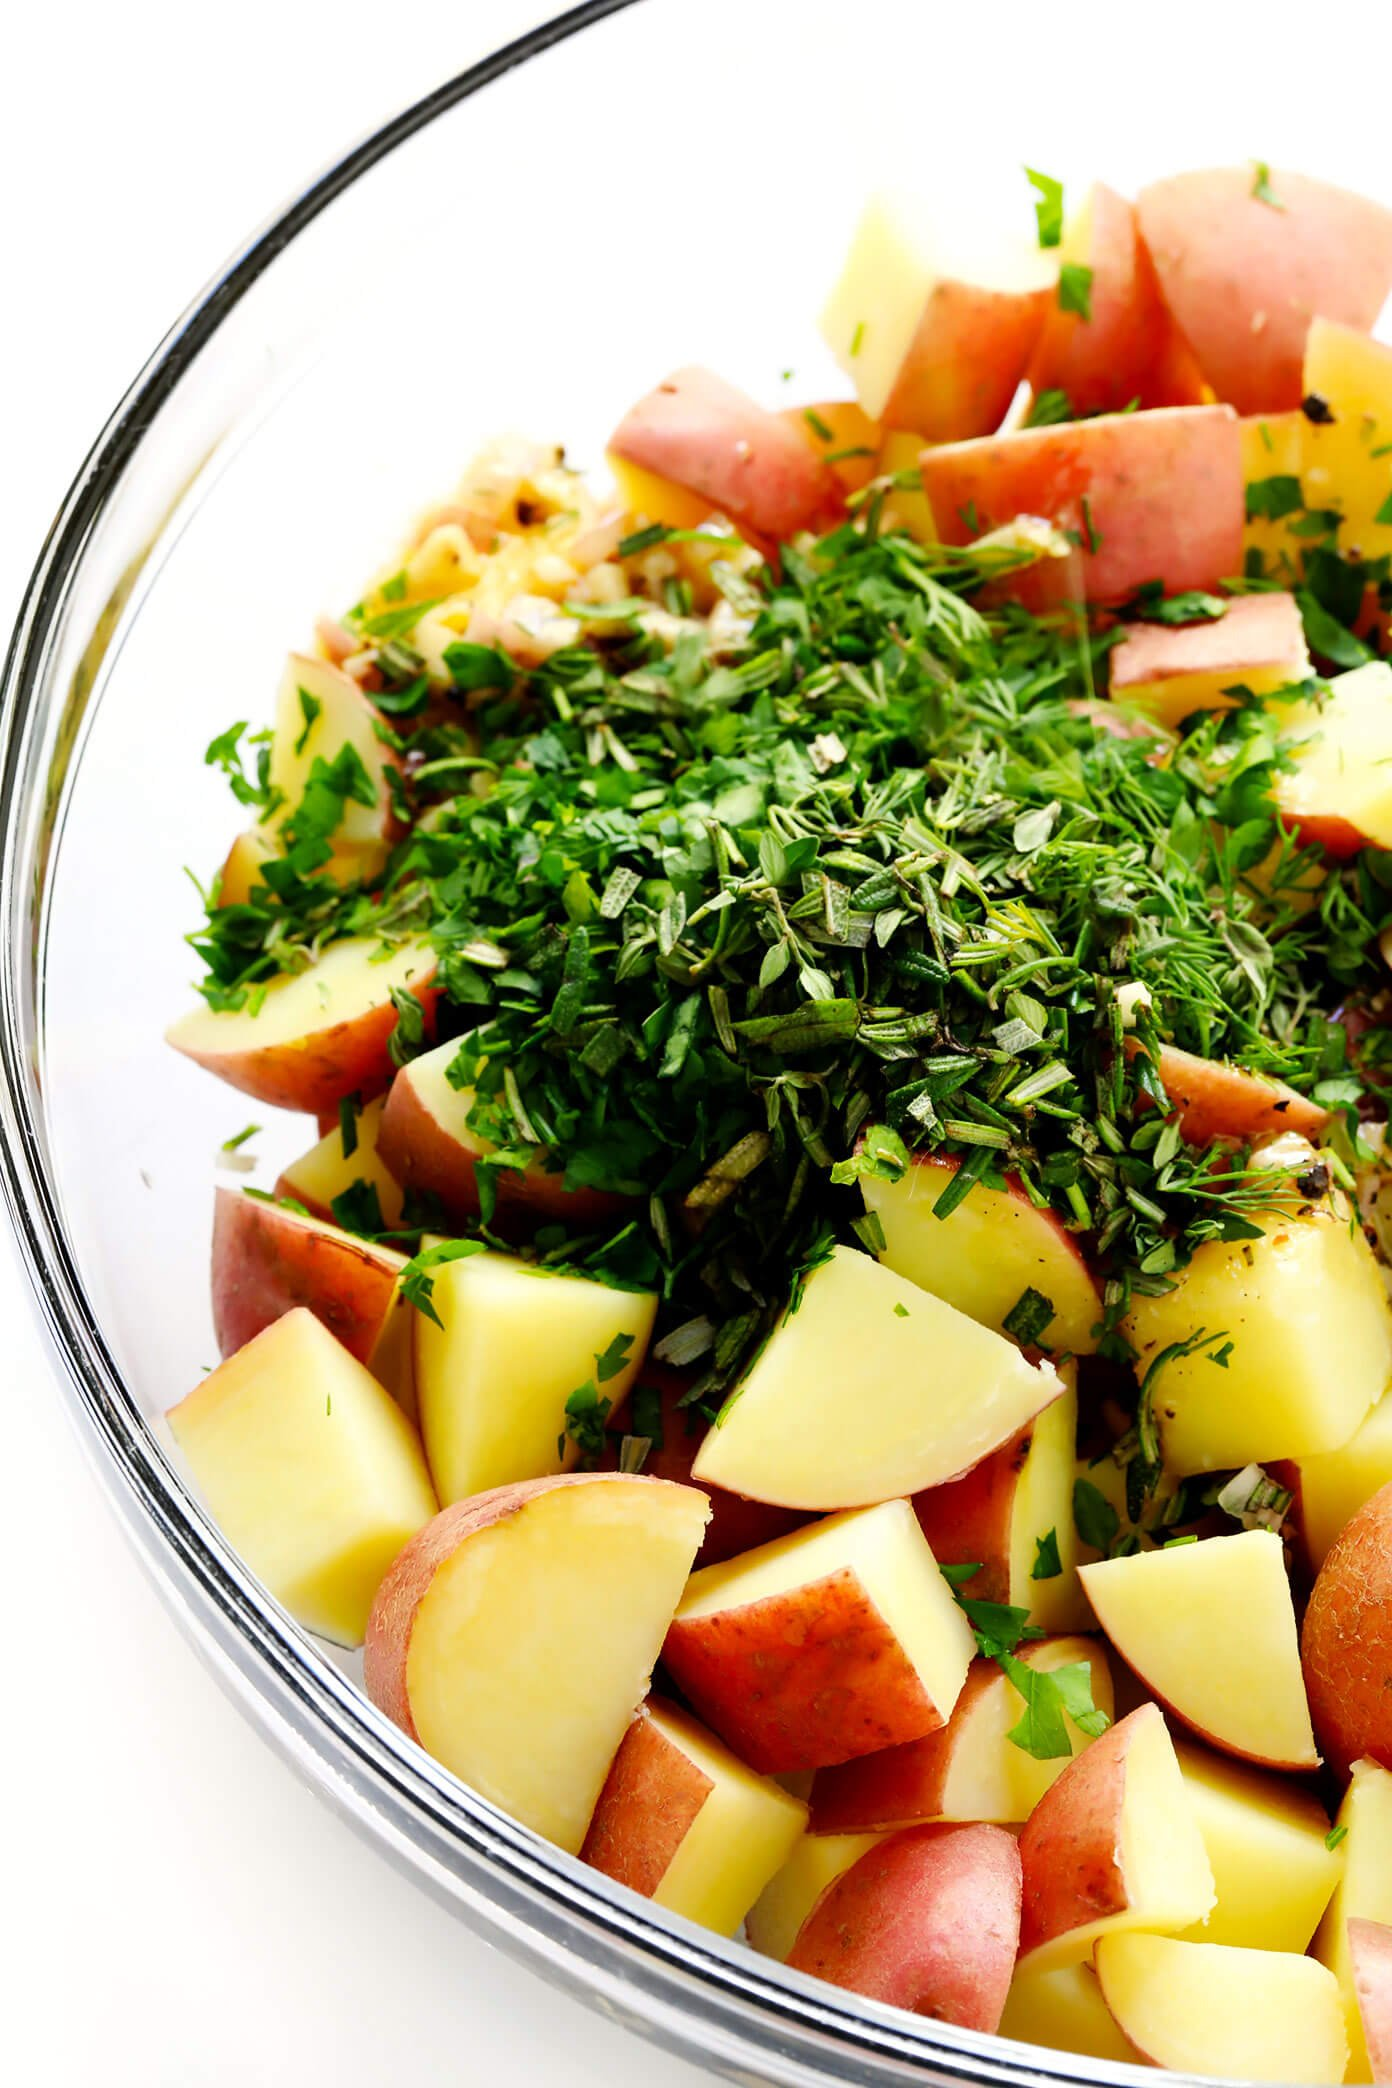 French Potato Salad Ingredients (Potatoes, Lemon Vinaigrette, Shallots and Fresh Herbs)